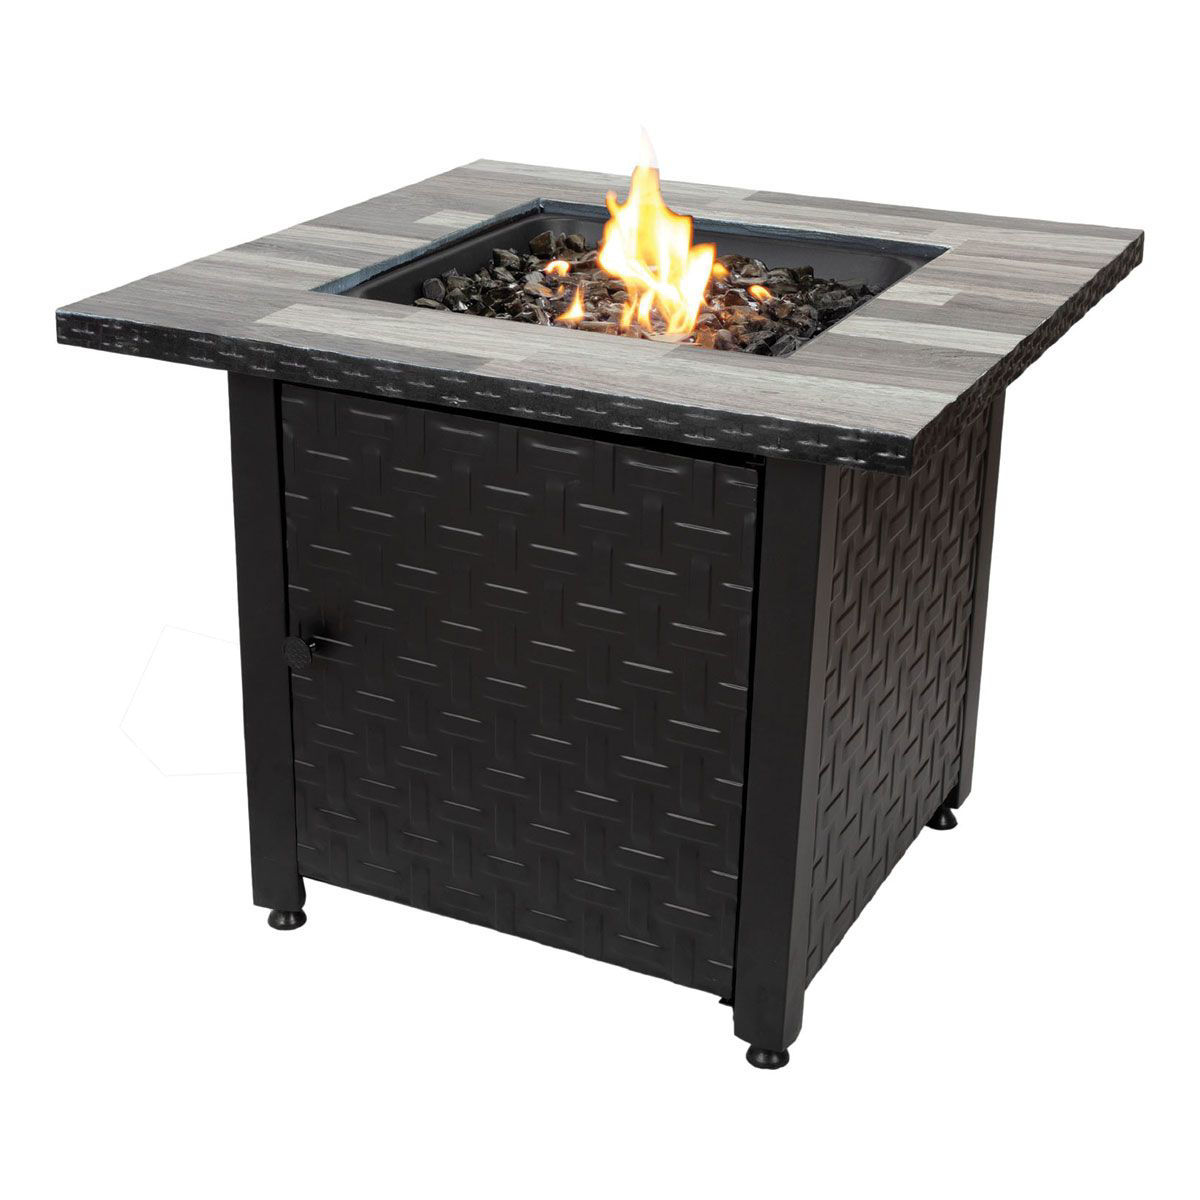 MR.BAR-B-Q GAS OUTDOOR FIRE PIT | Badcock Home Furniture &more